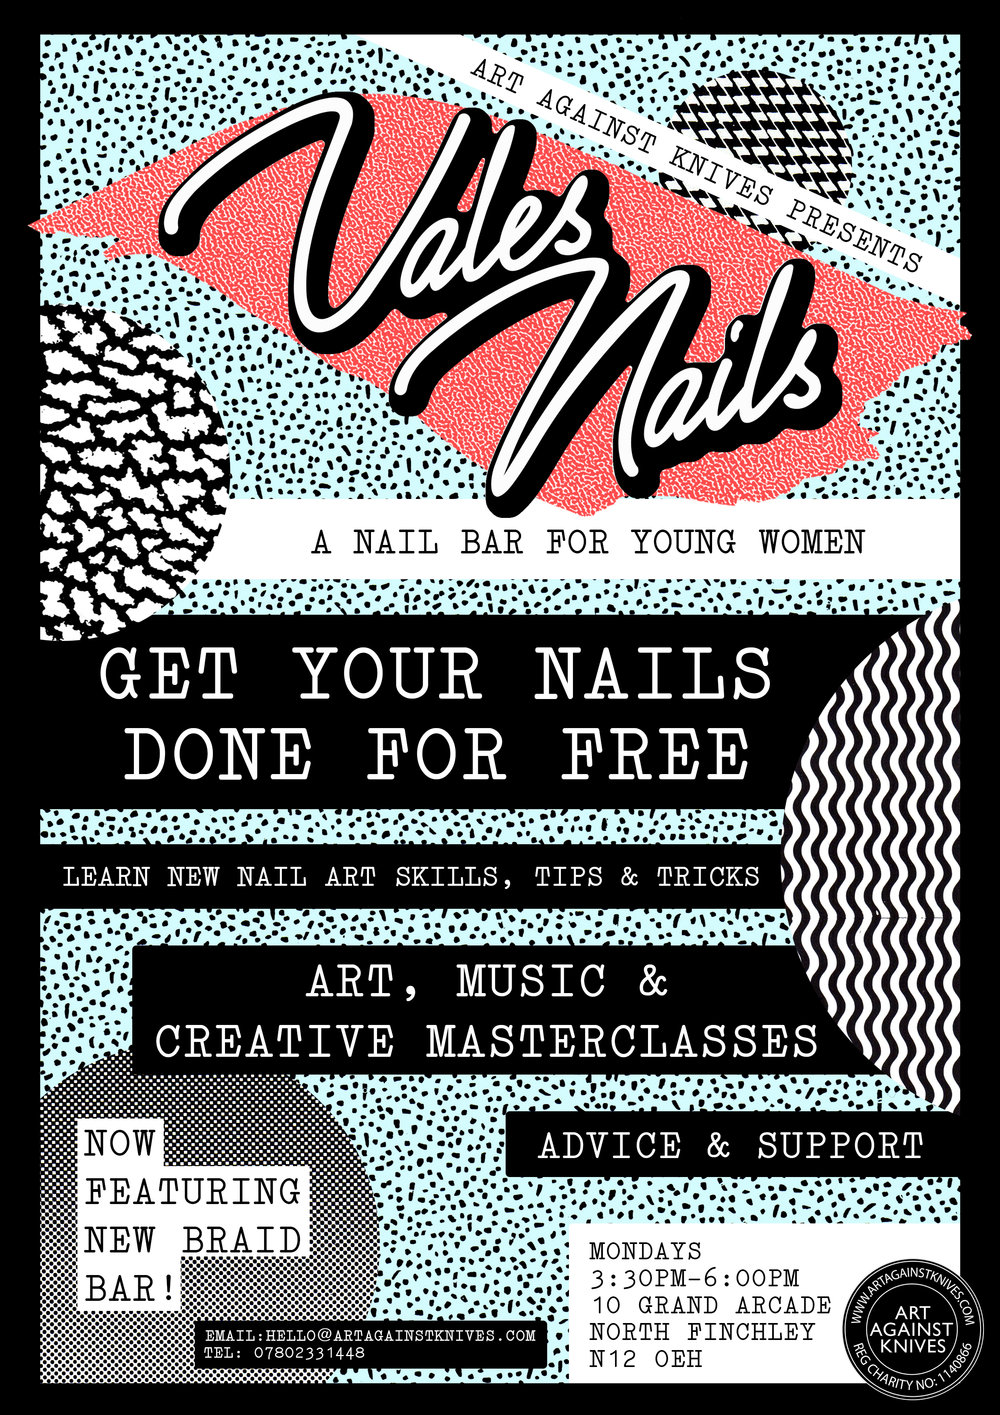 Vales Nails Flyer.jpg